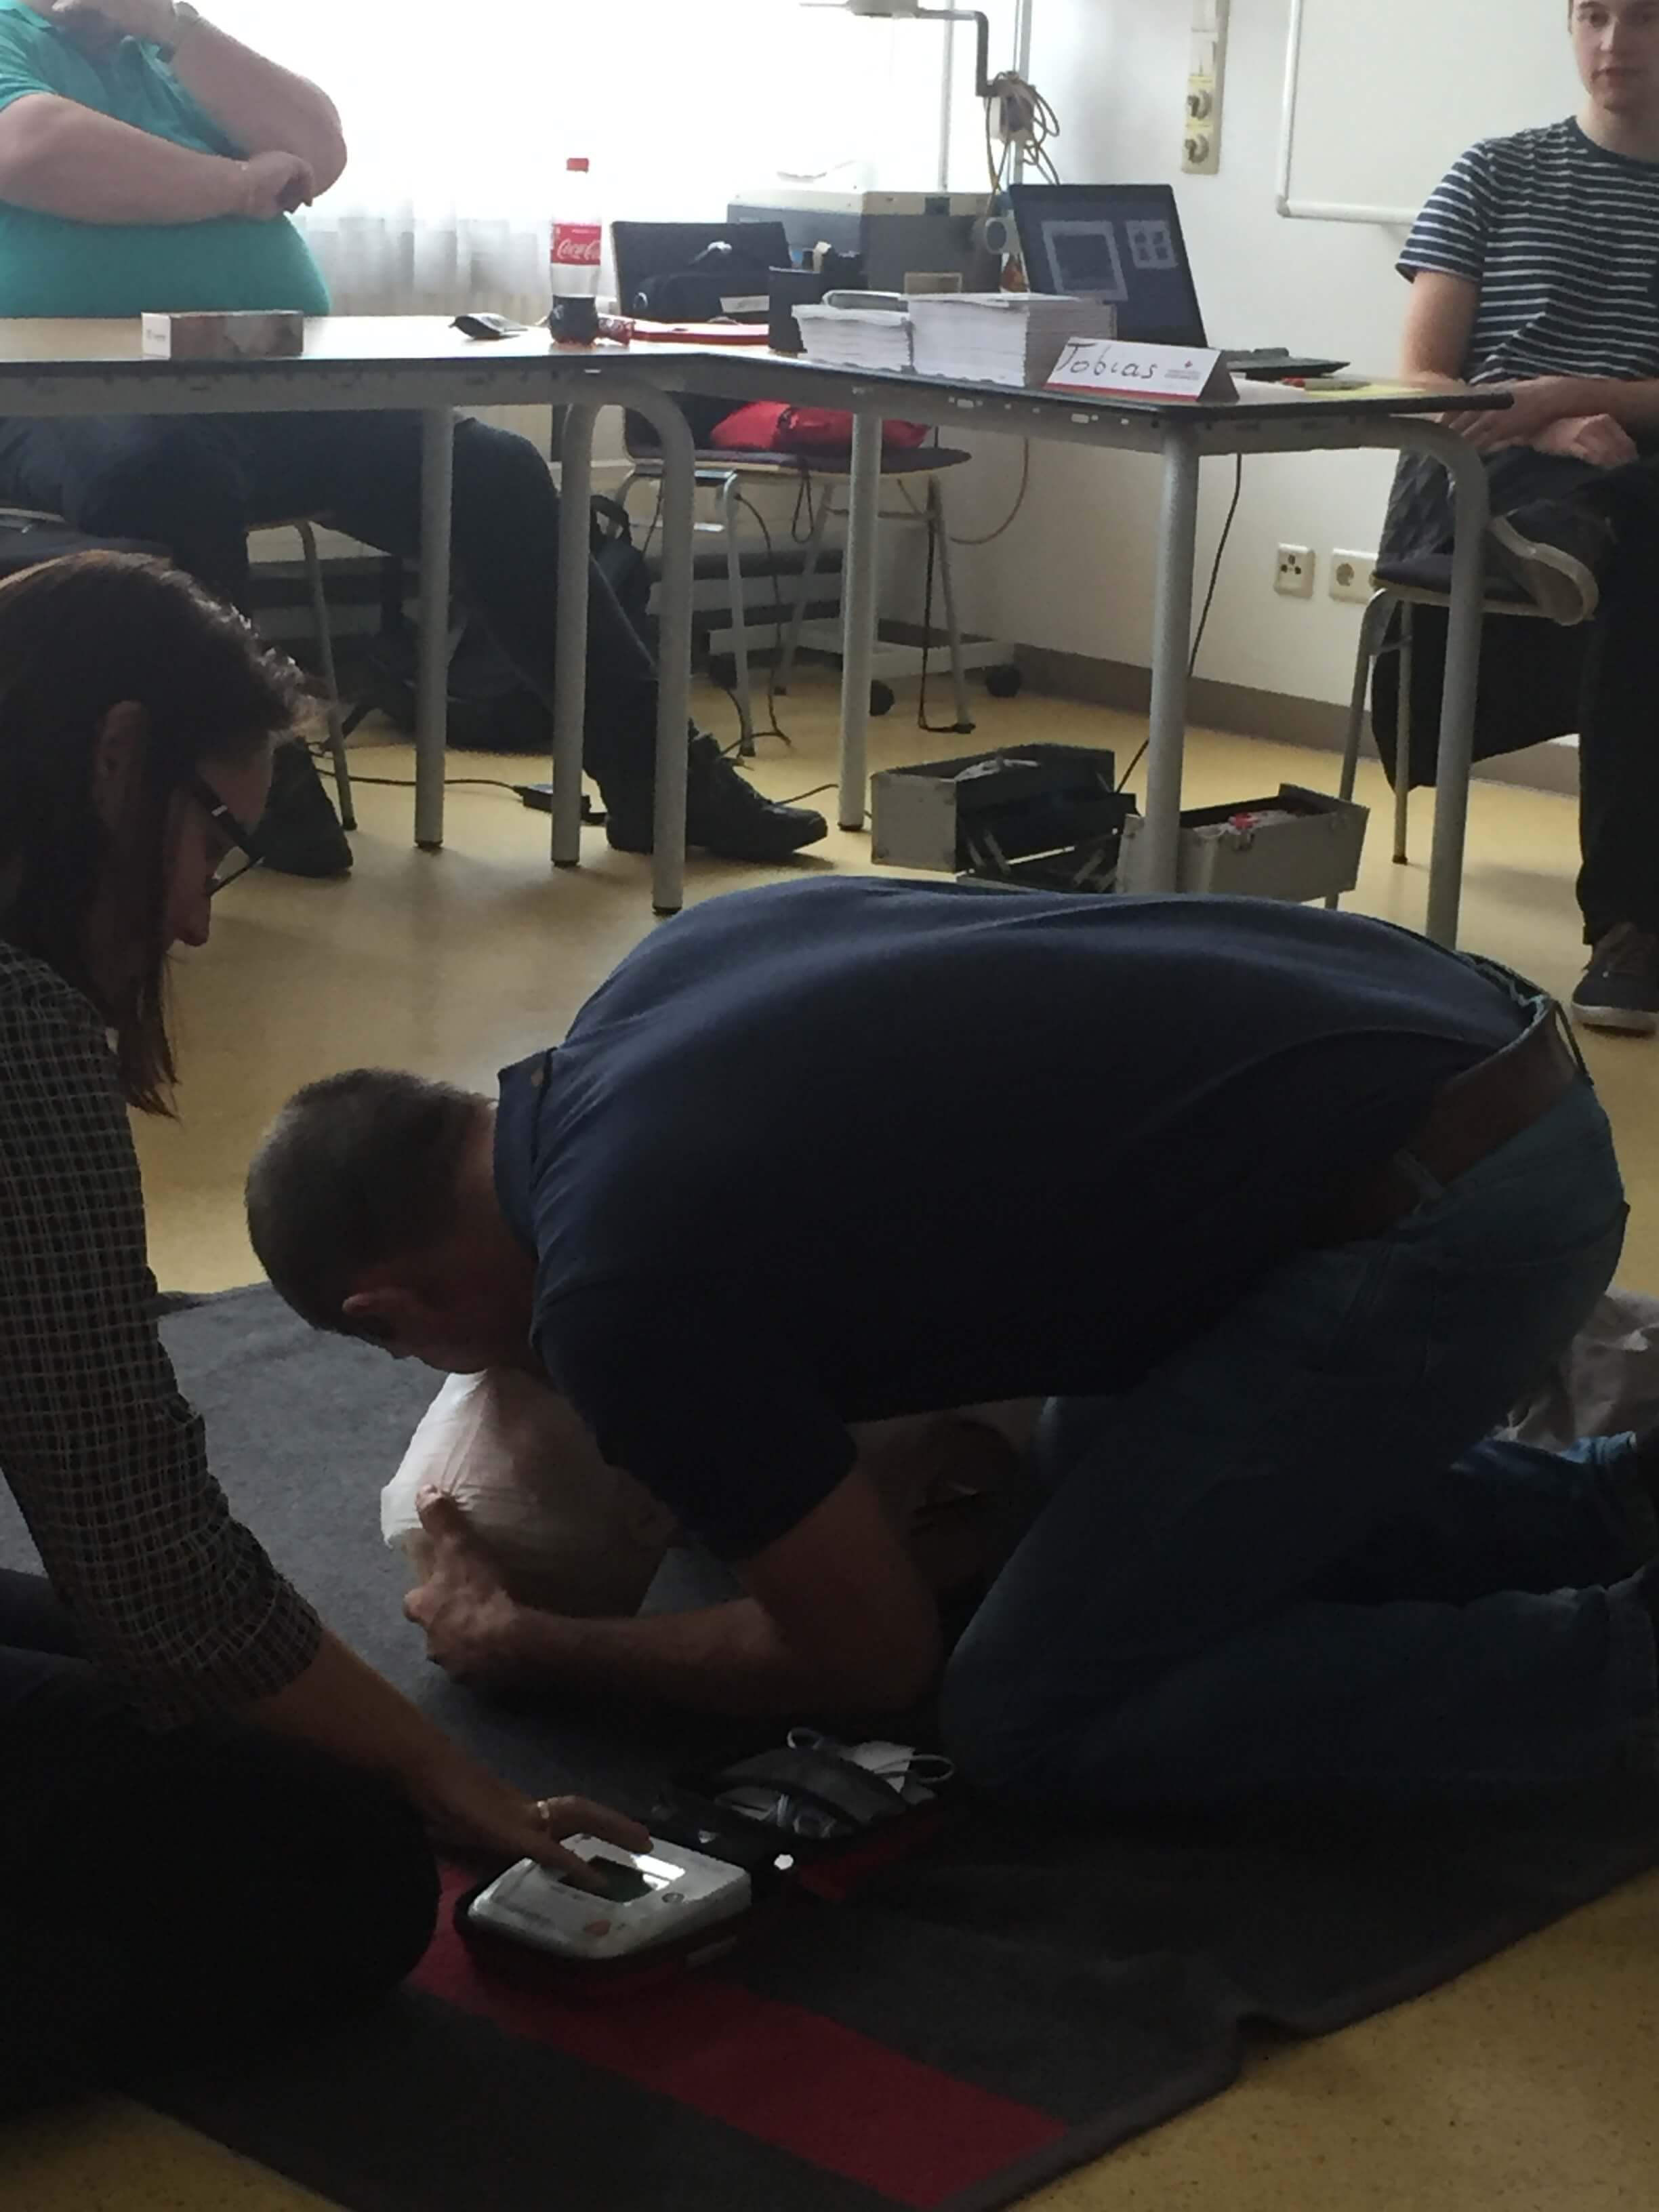 First aid course for our employees